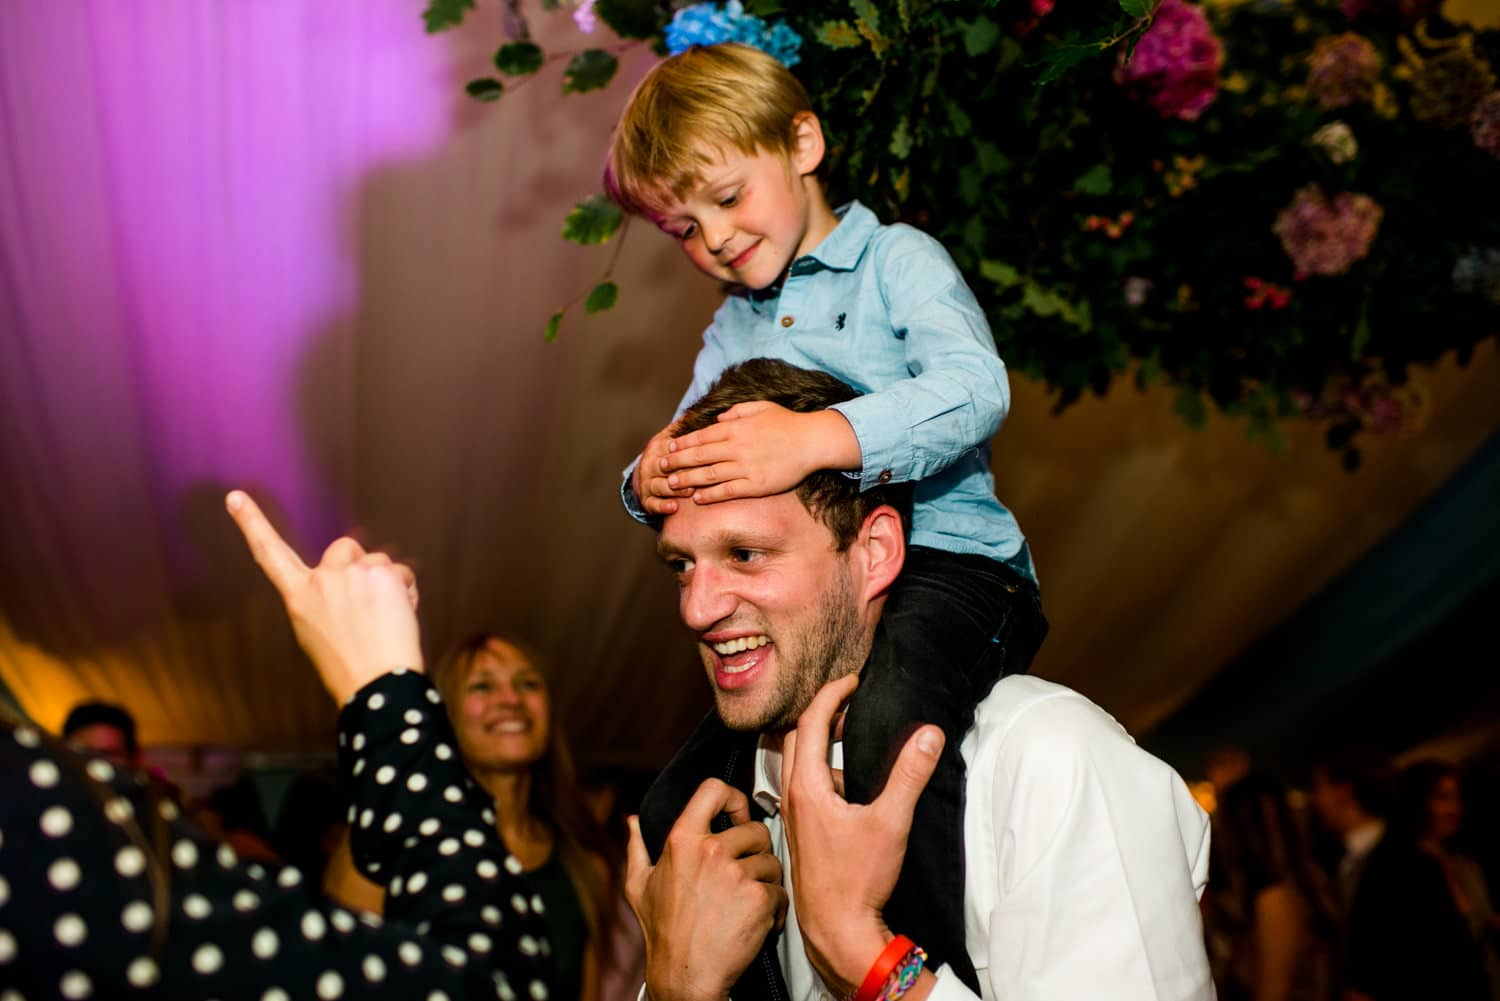 kid on shoulders of groom during wedding party